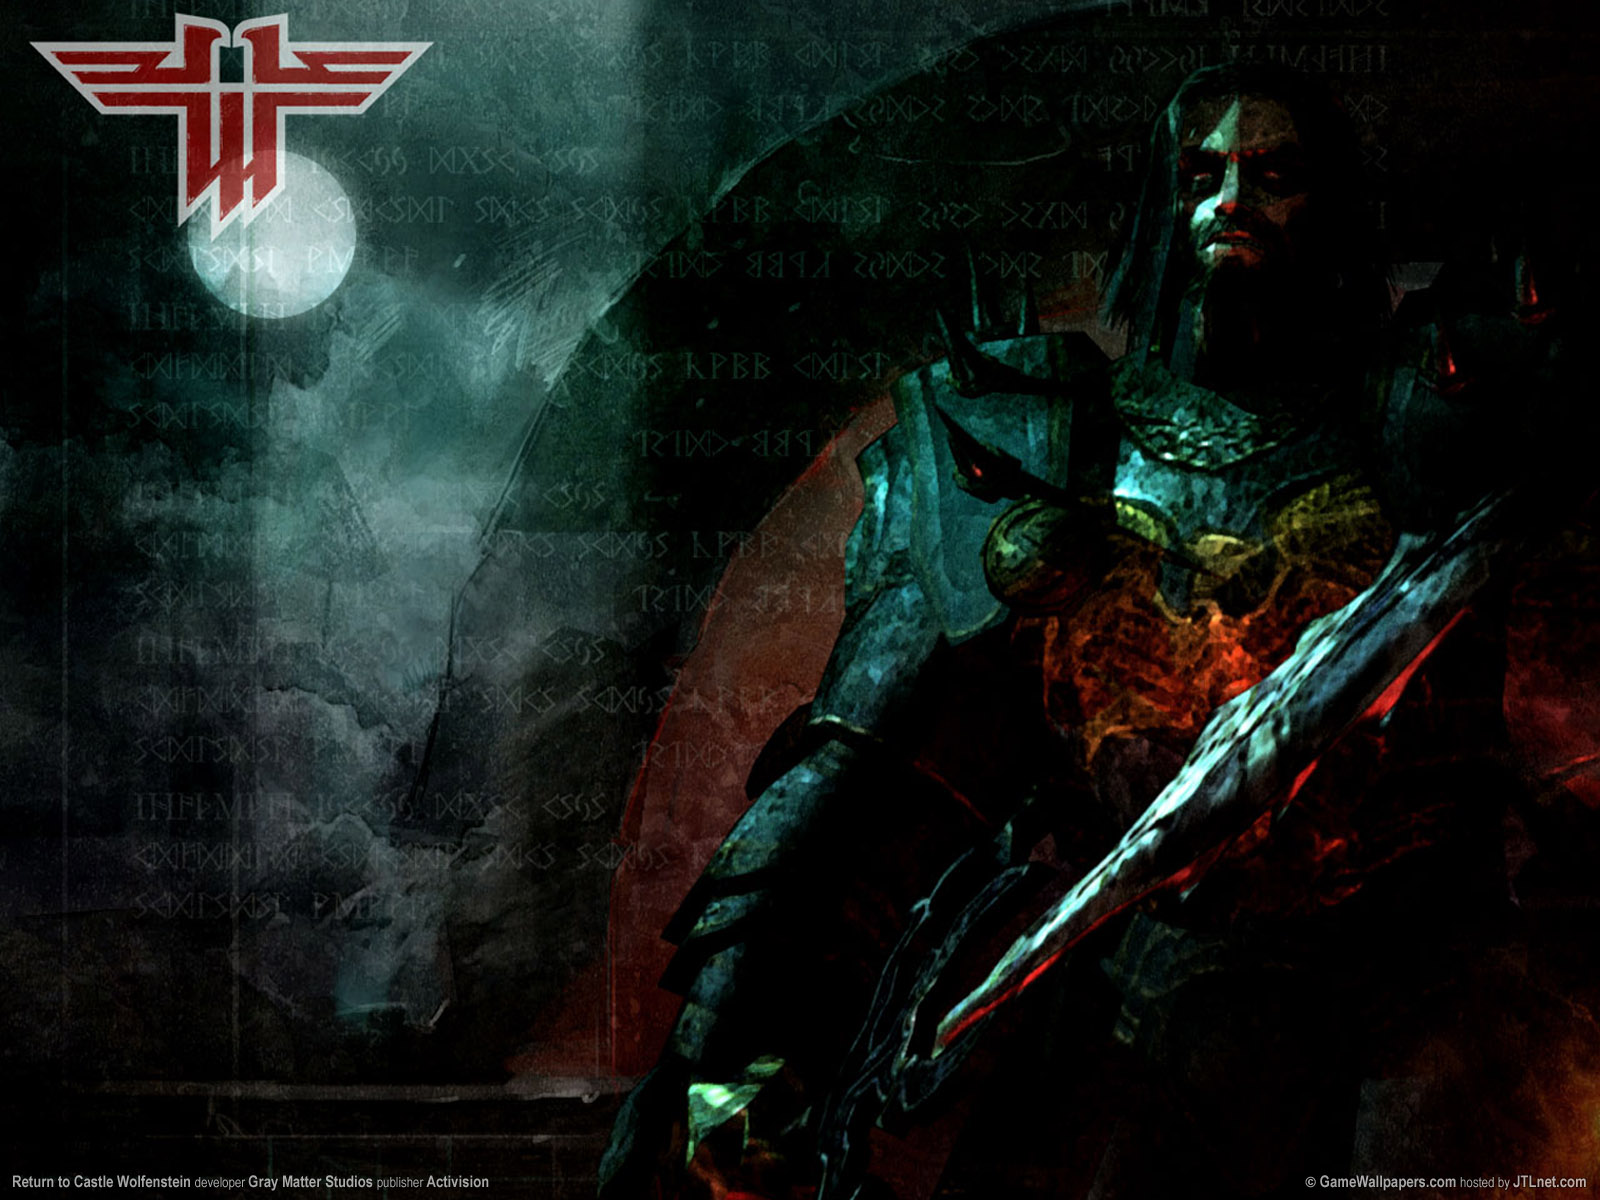 http://4.bp.blogspot.com/-1pLKrc0kEQY/TbnnC2KEWsI/AAAAAAAAHtk/0pIc_hmTOGA/s1600/wallpaper_return_to_castle_wolfenstein_04_1600.jpg